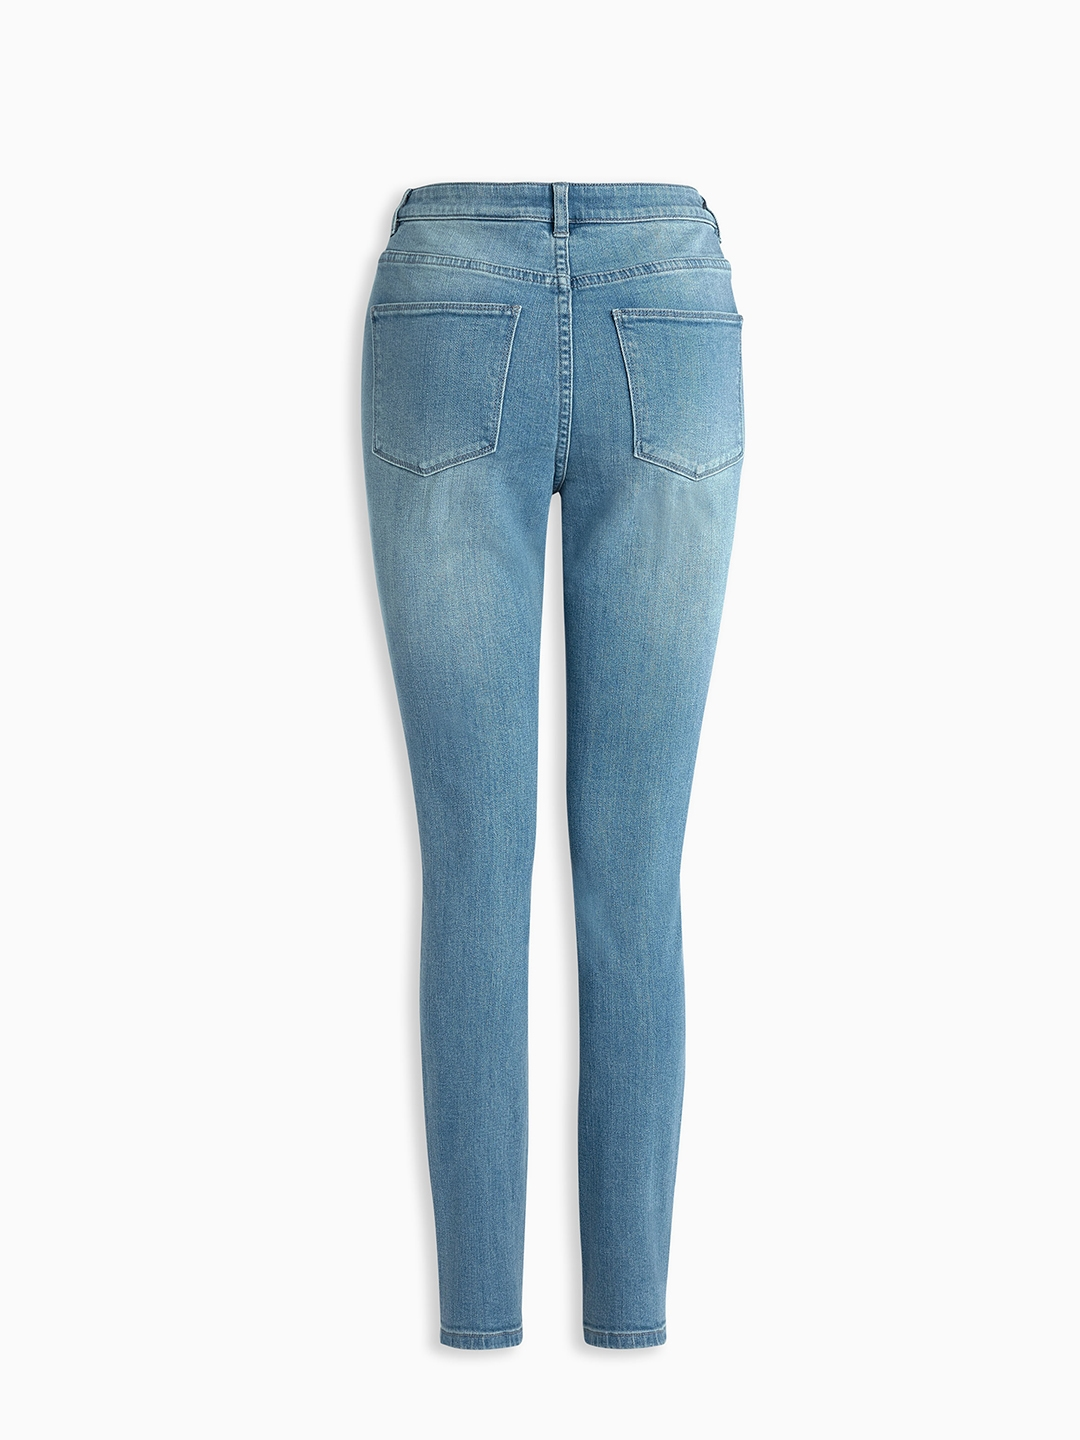 2cf382759b2 Buy Next Women Blue Skinny Fit High Rise Clean Look Stretchable ...